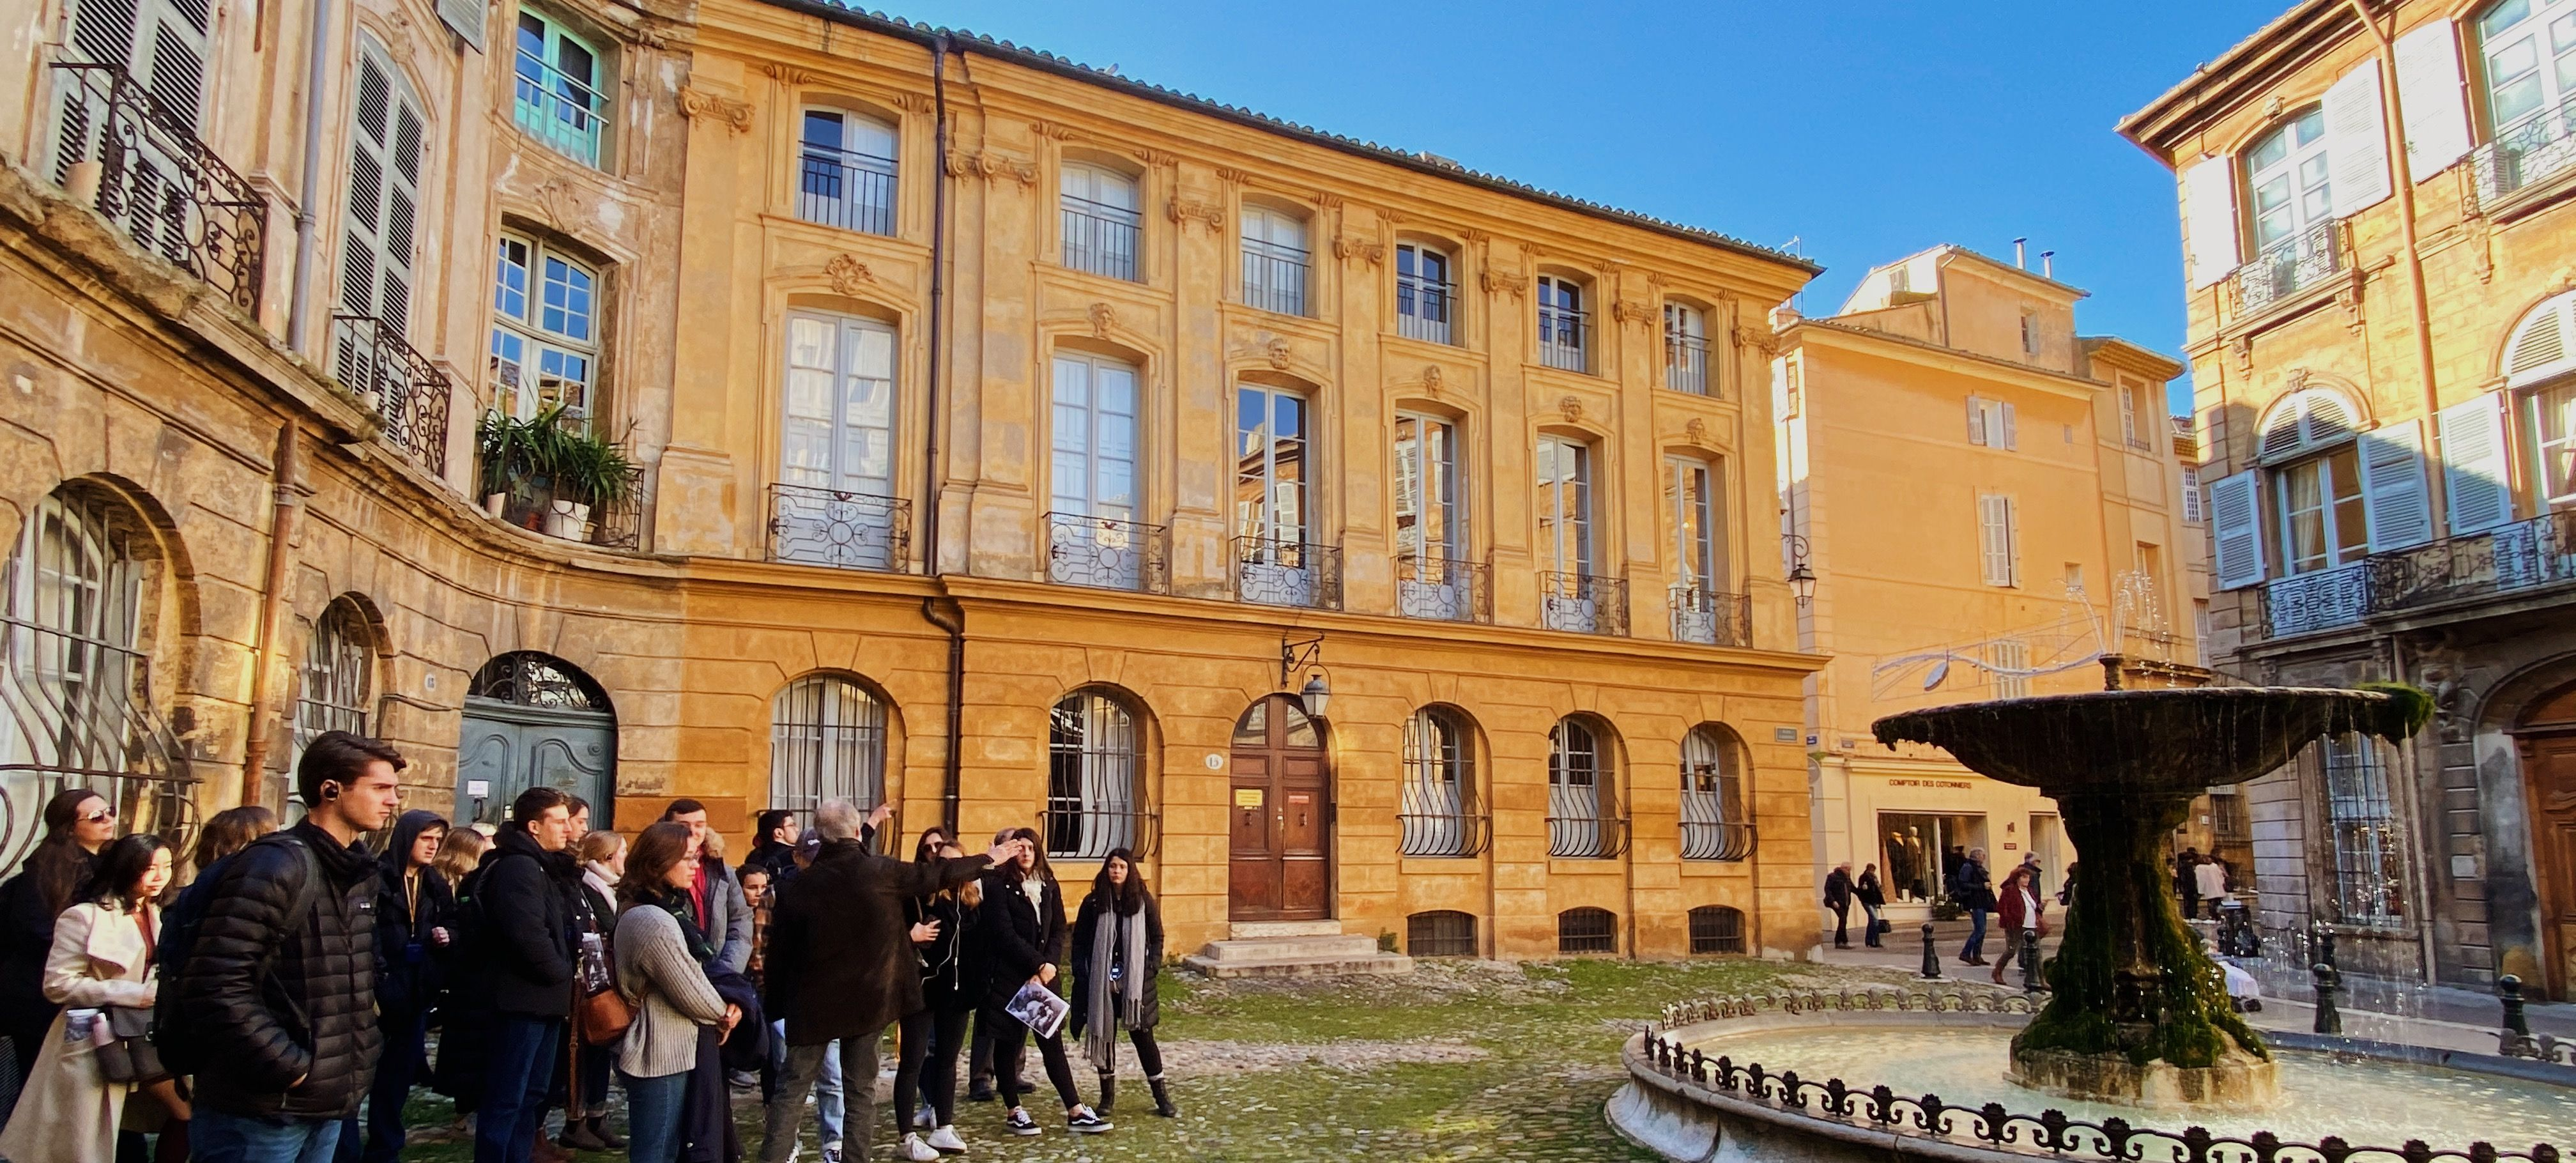 Aix-en-Provence with students studying abroad